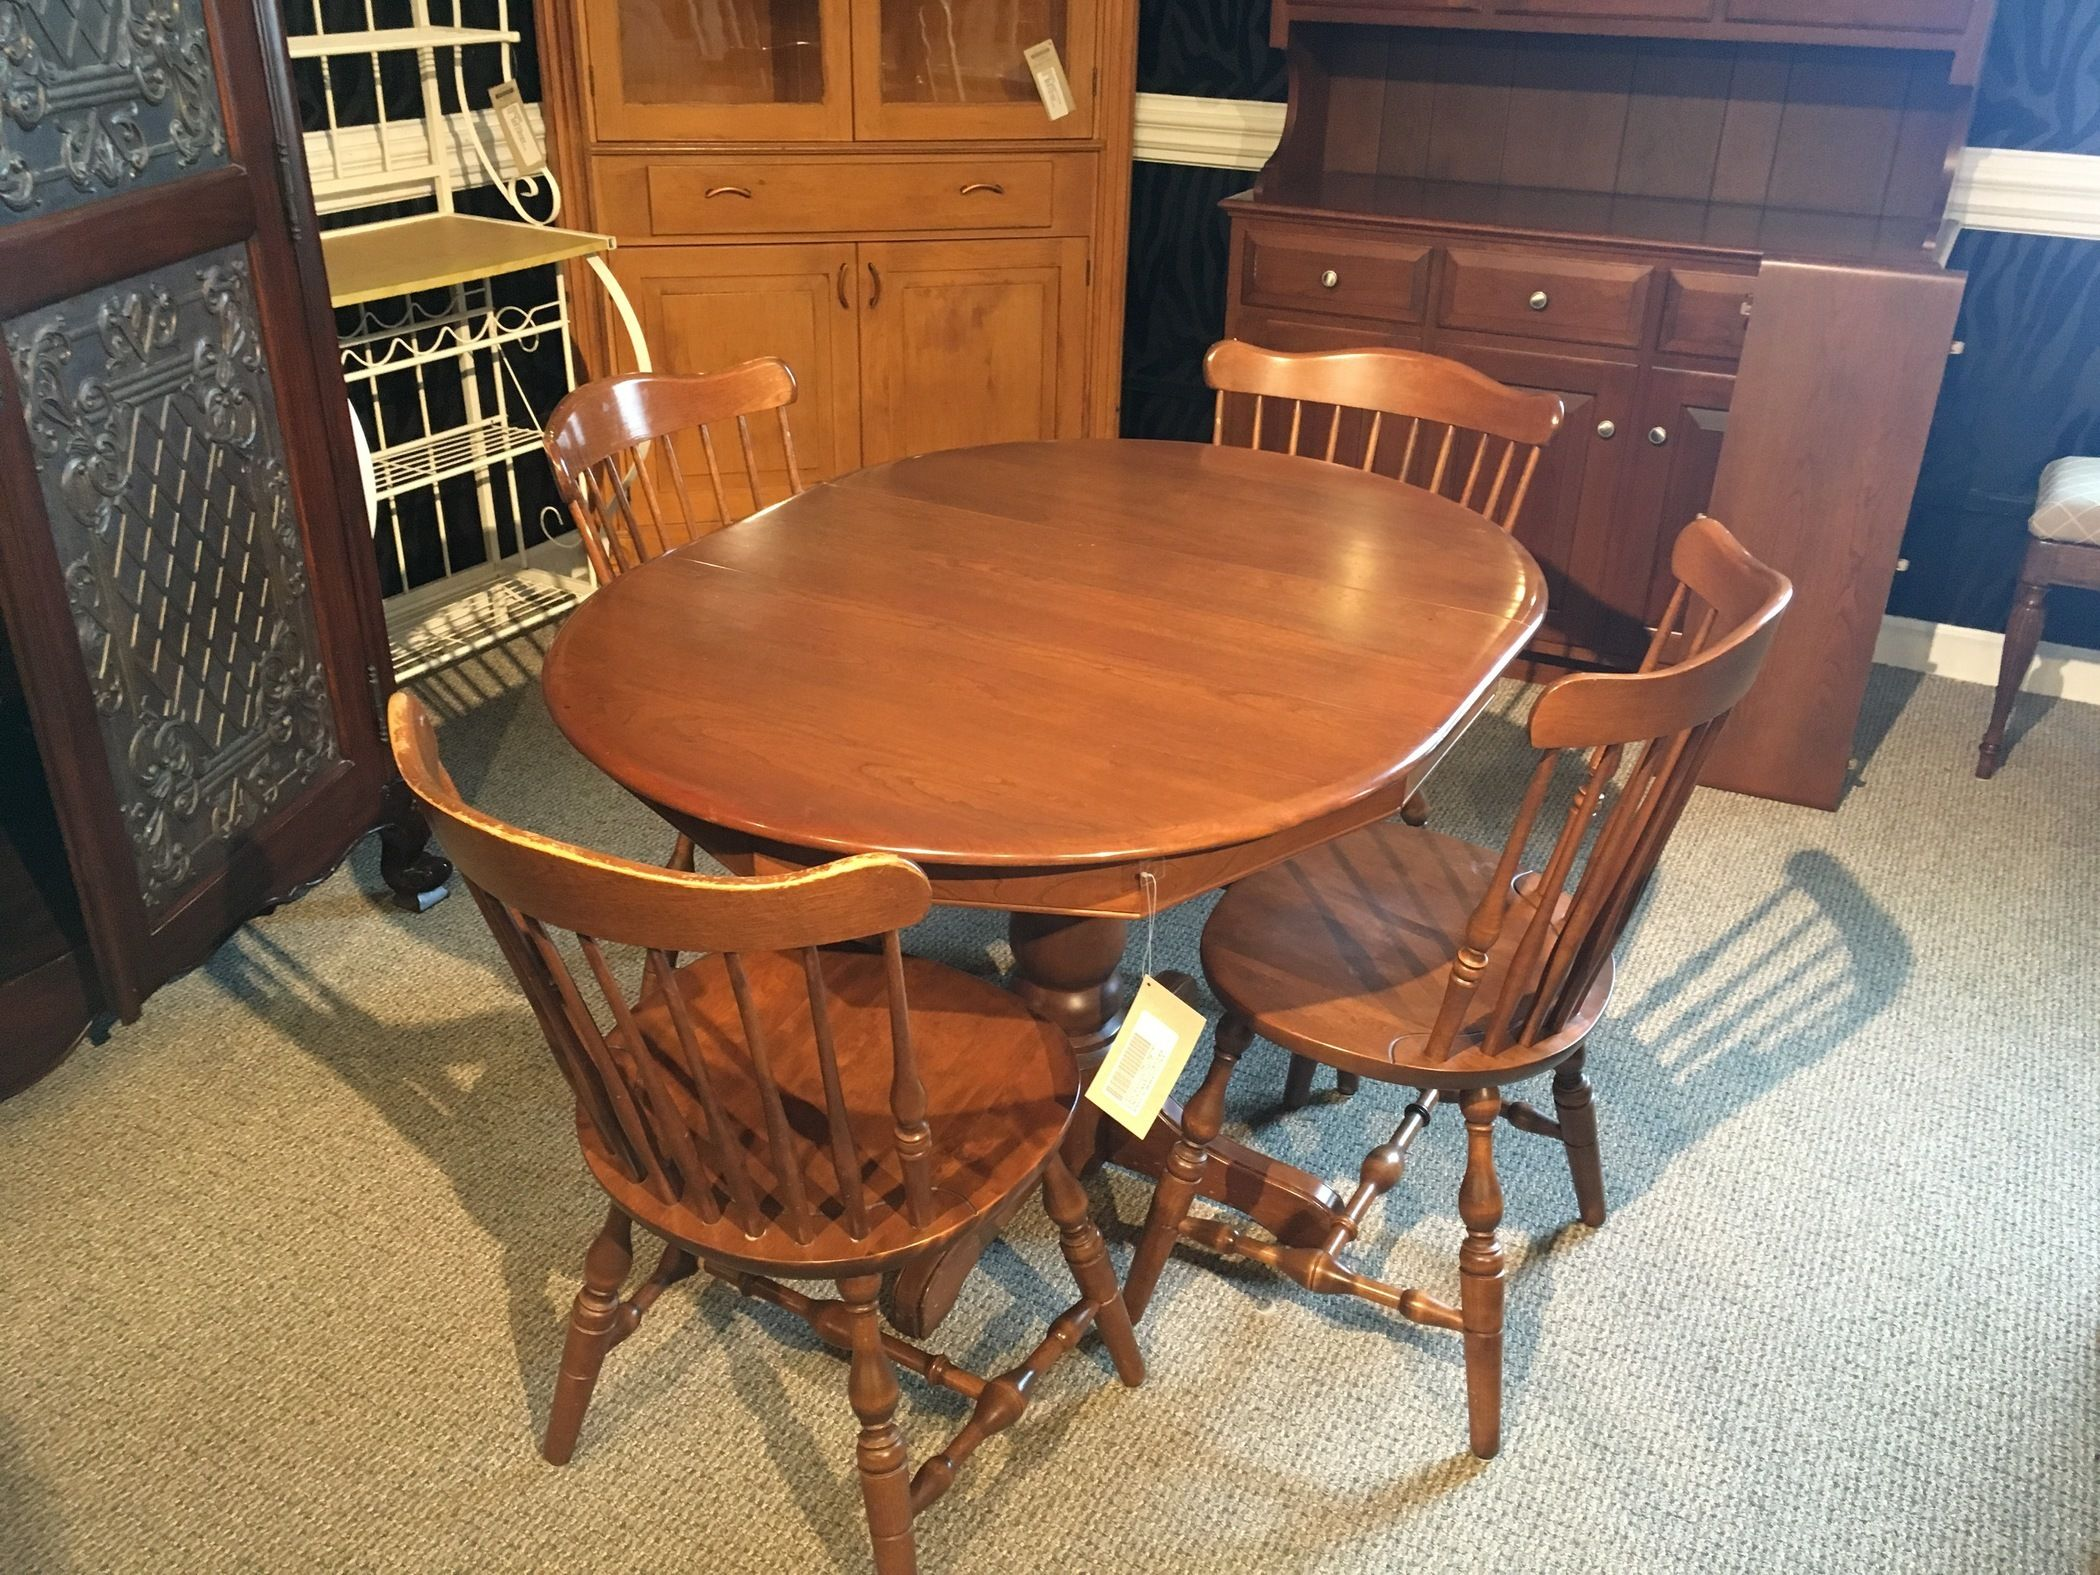 S bent brothers dinette allegheny furniture consignment for S bent dining room furniture